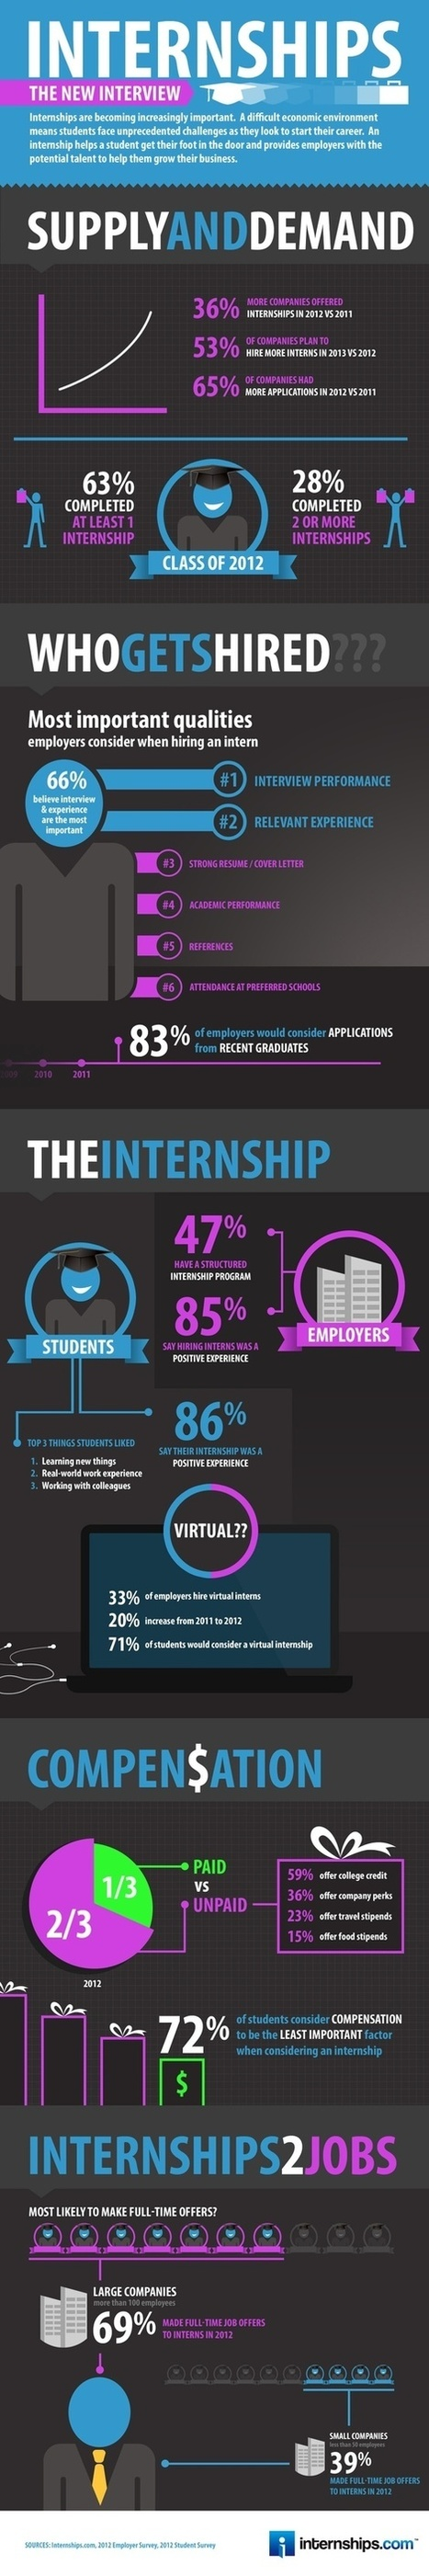 Hiring of interns is to rise in 2013 | My Social Recruitment | Scoop.it